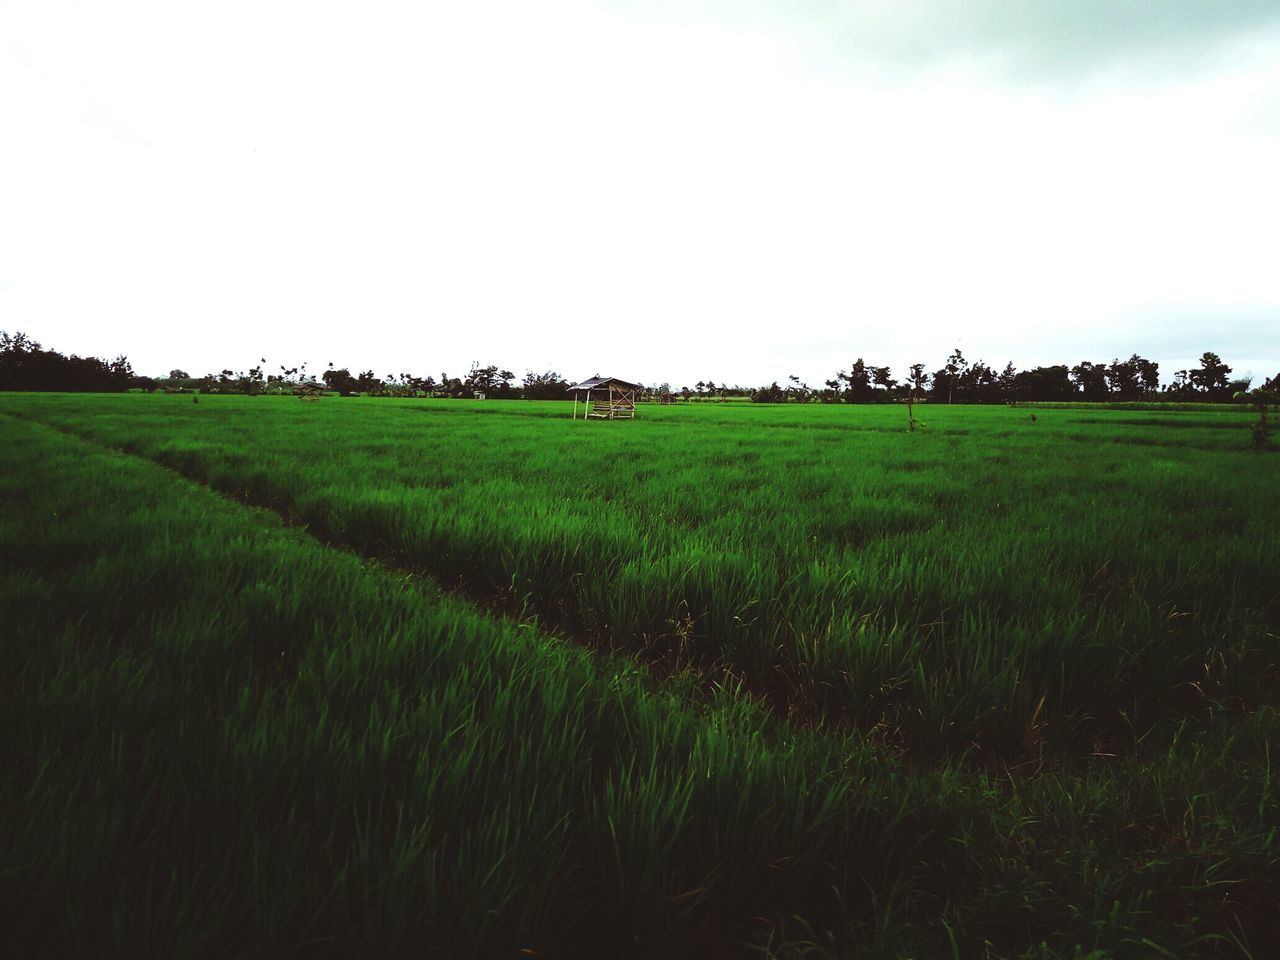 Nature Eyeem Indonesia Agriculture Landscape Field Rural Scene Farm Growth Green Color Sky Scenics Nature Cloud - Sky Tranquil Scene No People Outdoors Rice Paddy Rice - Cereal Plant Beauty In Nature Day